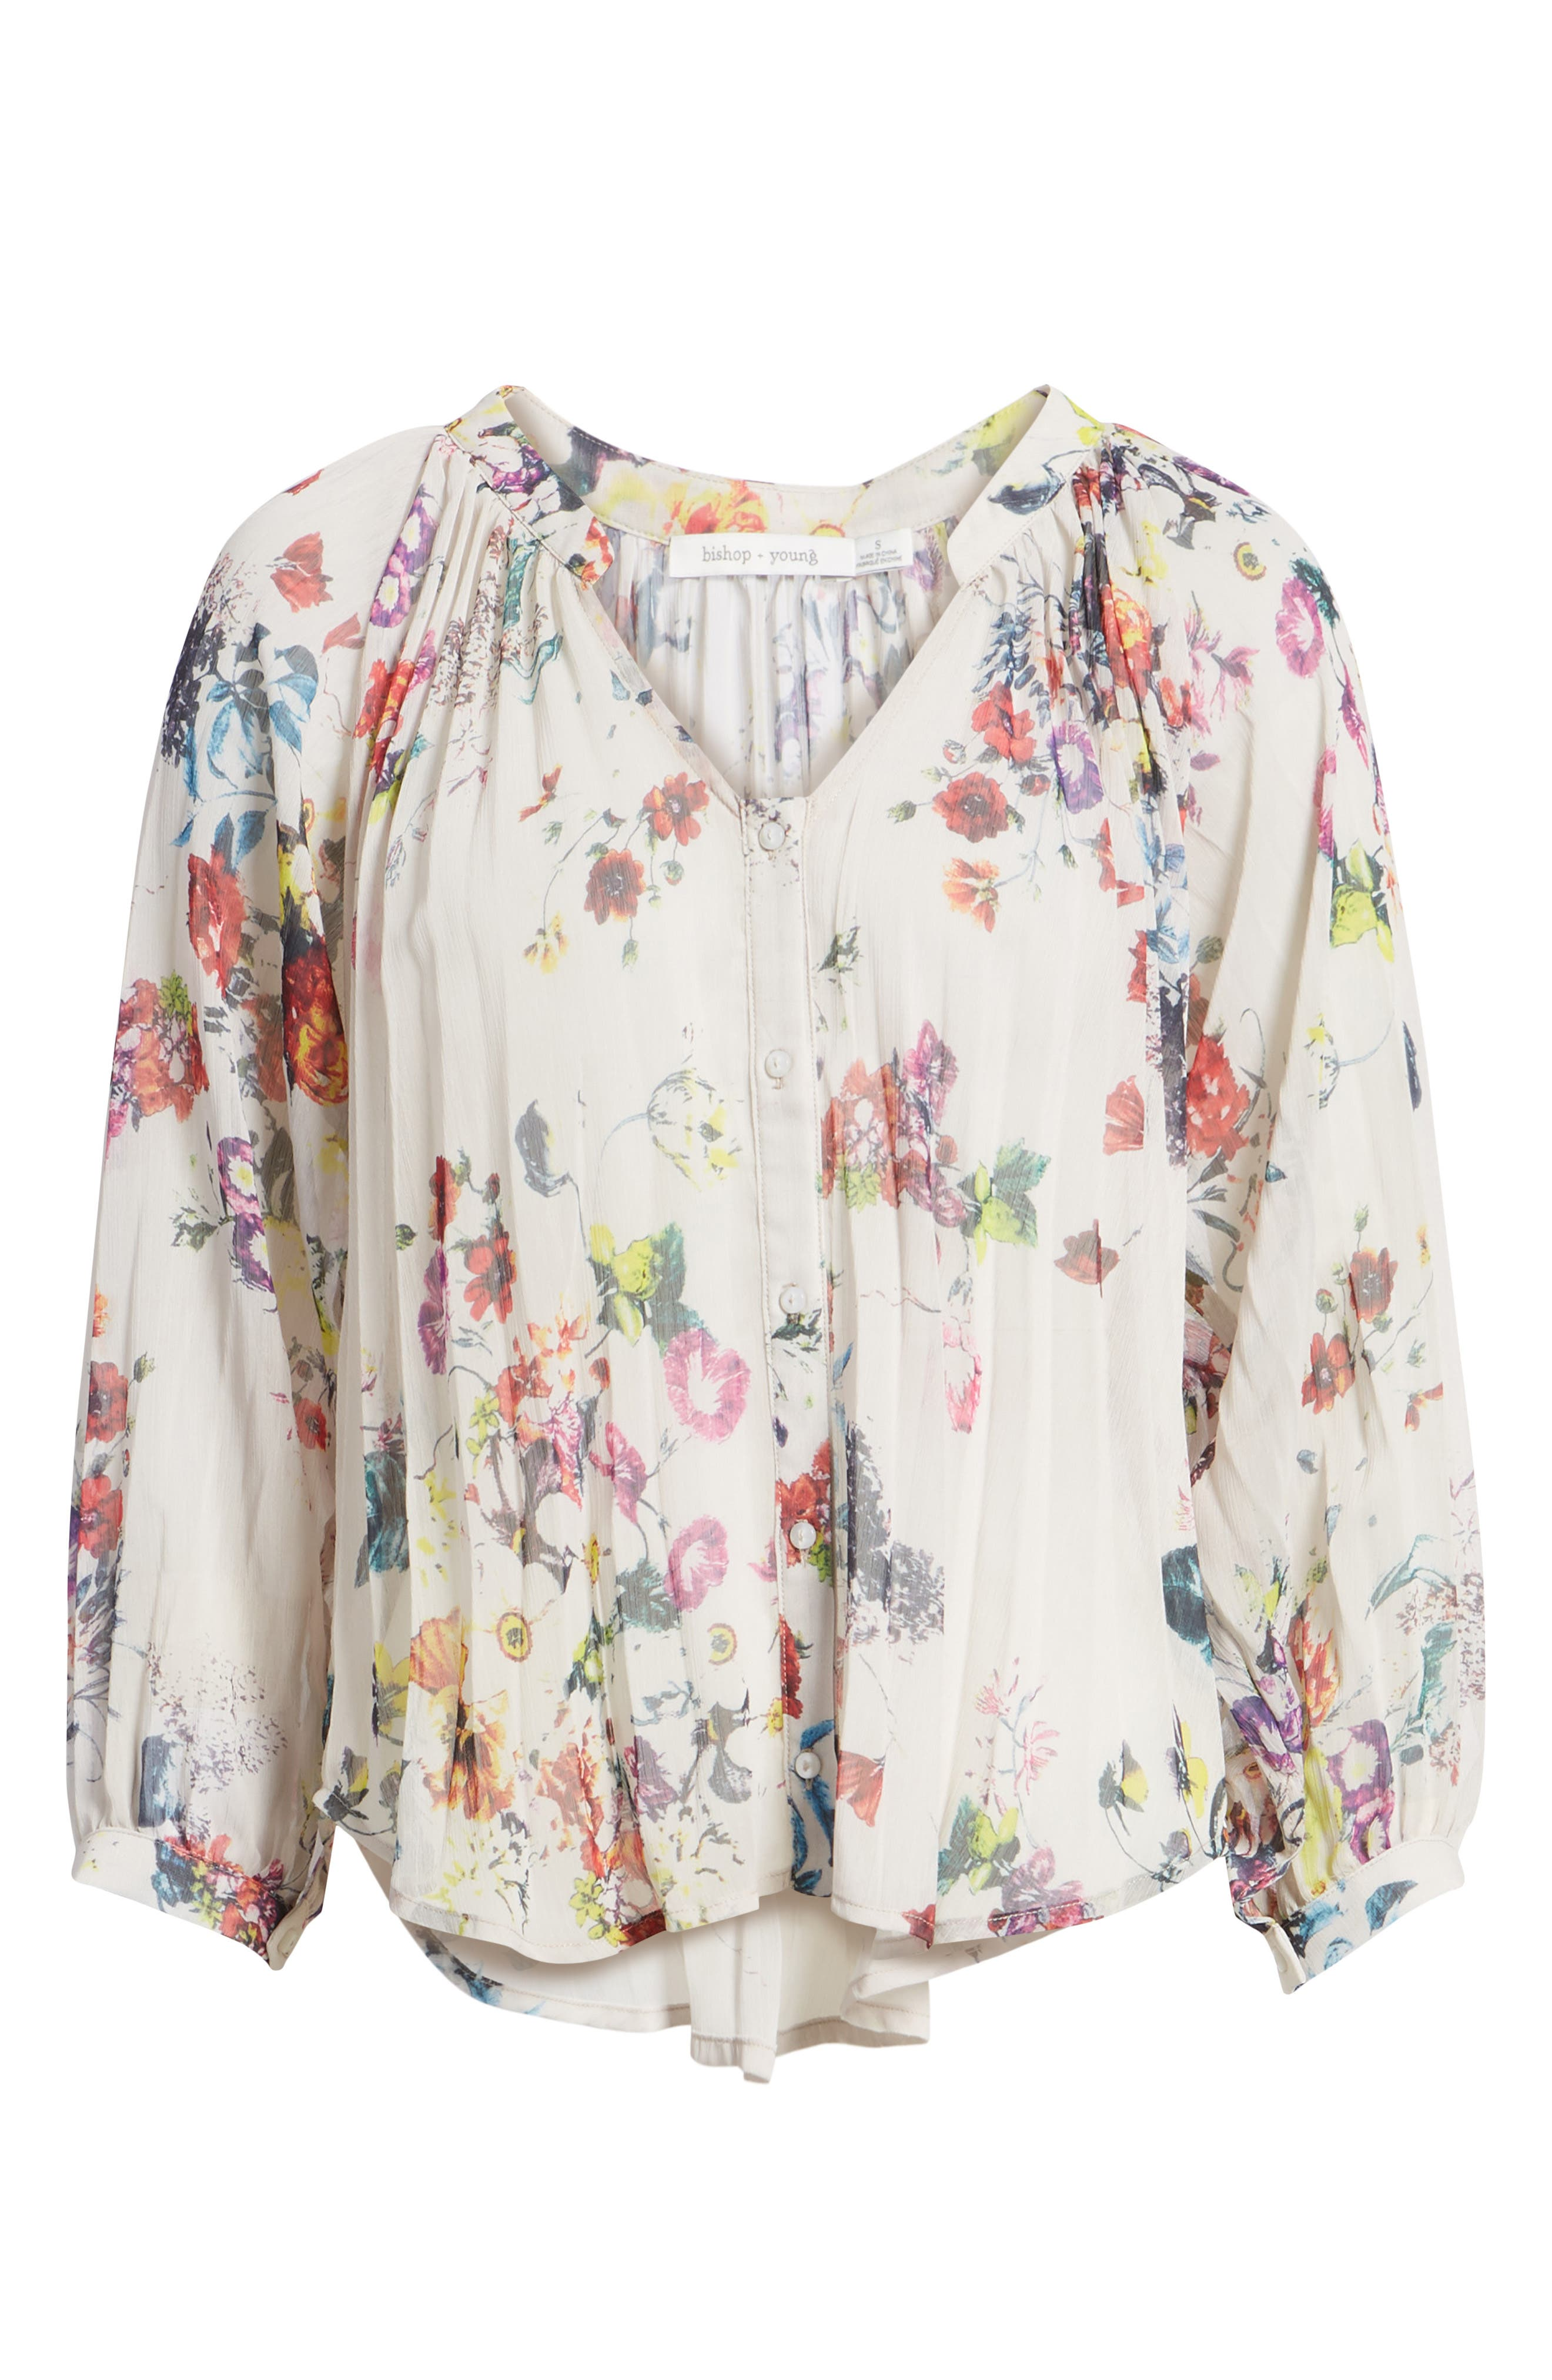 Bishop + Young Floral Pleated Top,                             Alternate thumbnail 7, color,                             900